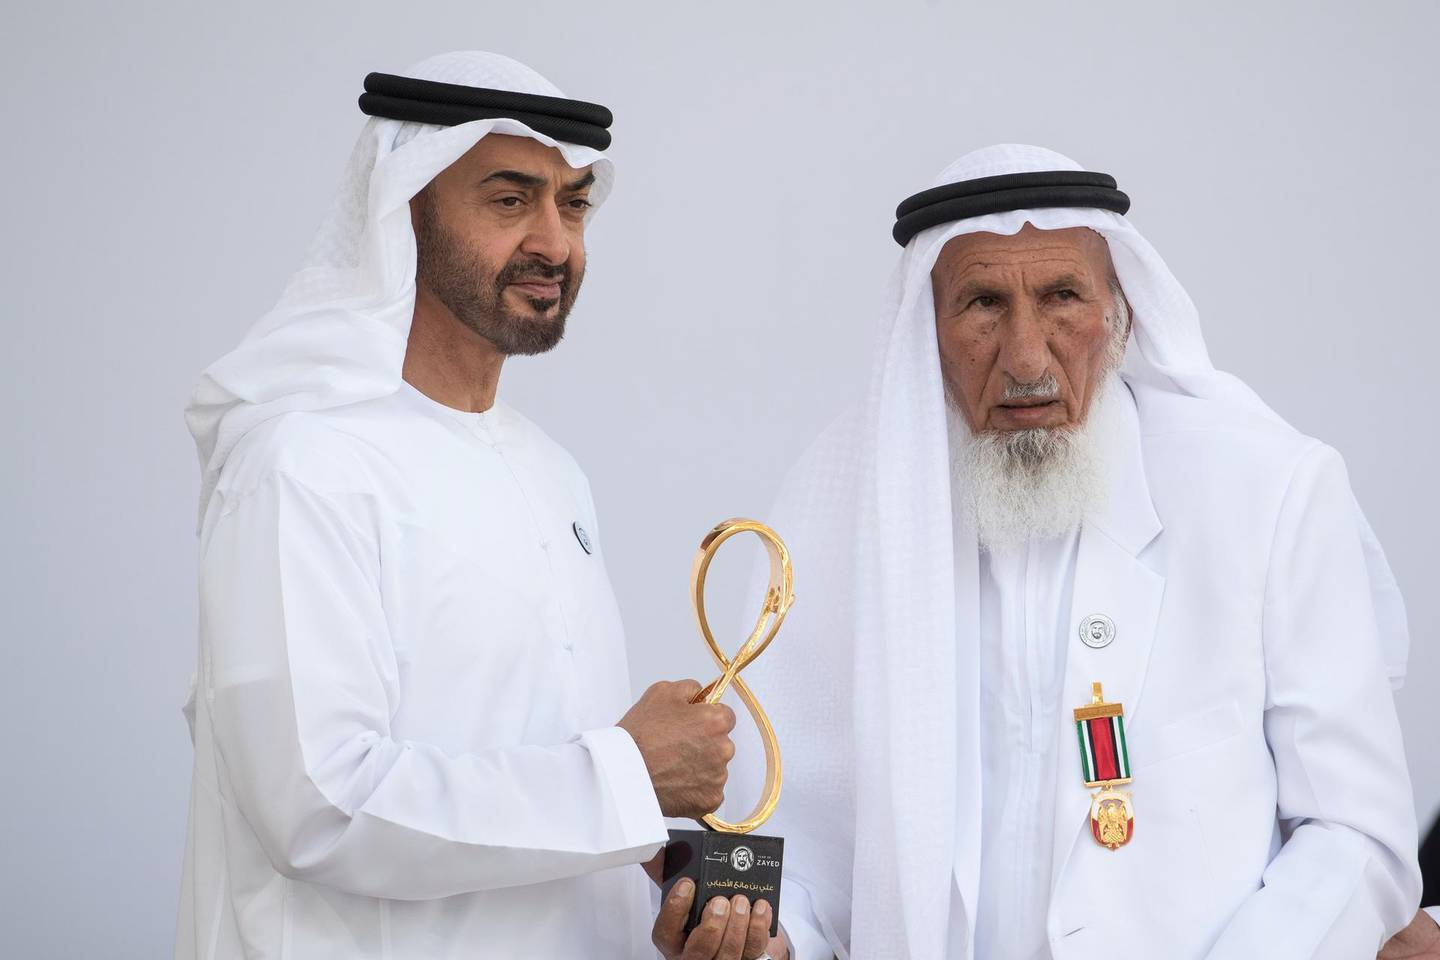 ABU DHABI, UNITED ARAB EMIRATES -  March 12, 2018: HH Sheikh Mohamed bin Zayed Al Nahyan, Crown Prince of Abu Dhabi and Deputy Supreme Commander of the UAE Armed Forces (L), presents an Abu Dhabi Award to Ali bin Manea Al Ahbabi (R), during the awards ceremony at the Sea Palace. ( Ryan Carter for the Crown Prince Court - Abu Dhabi ) ---